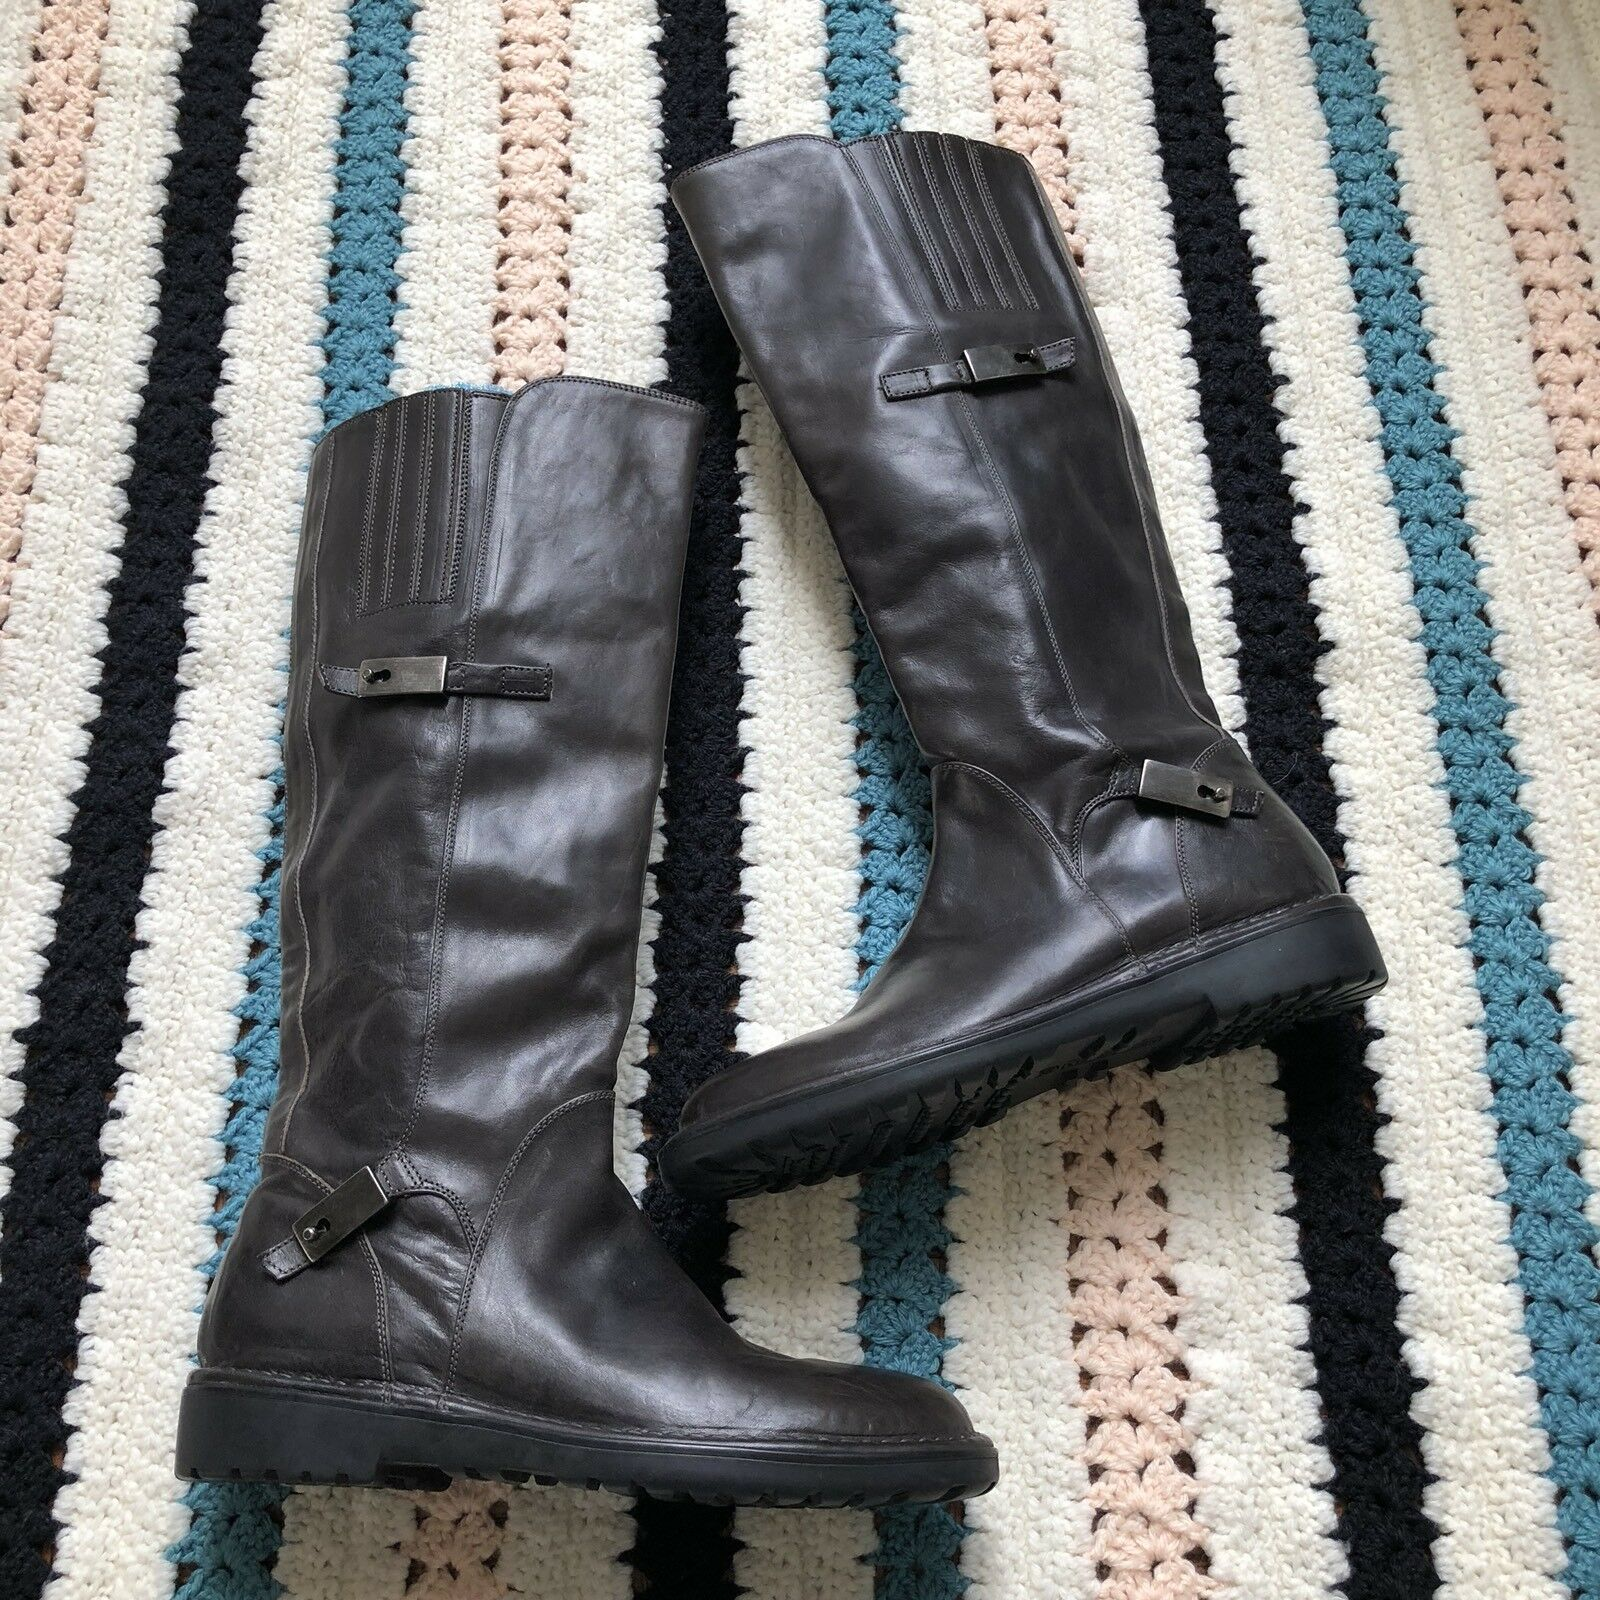 $625 NEW Alberto Fermani Sz 39 Knee High Distressed Leather Boots Anthracite